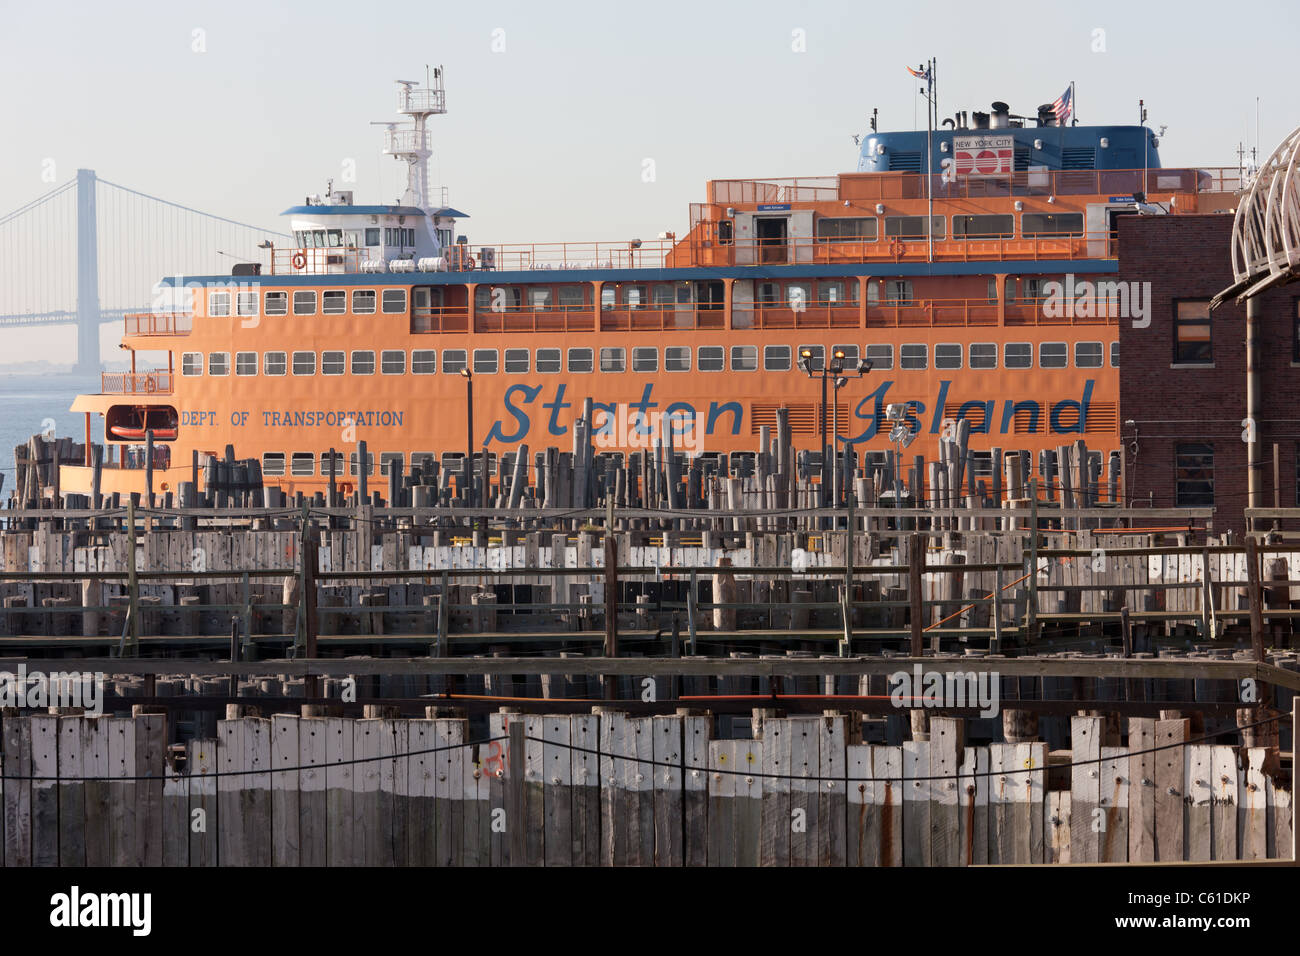 One of the boats of the Staten Island Ferry fleet docked at St. George Ferry Terminal in Staten Island, New York. - Stock Image